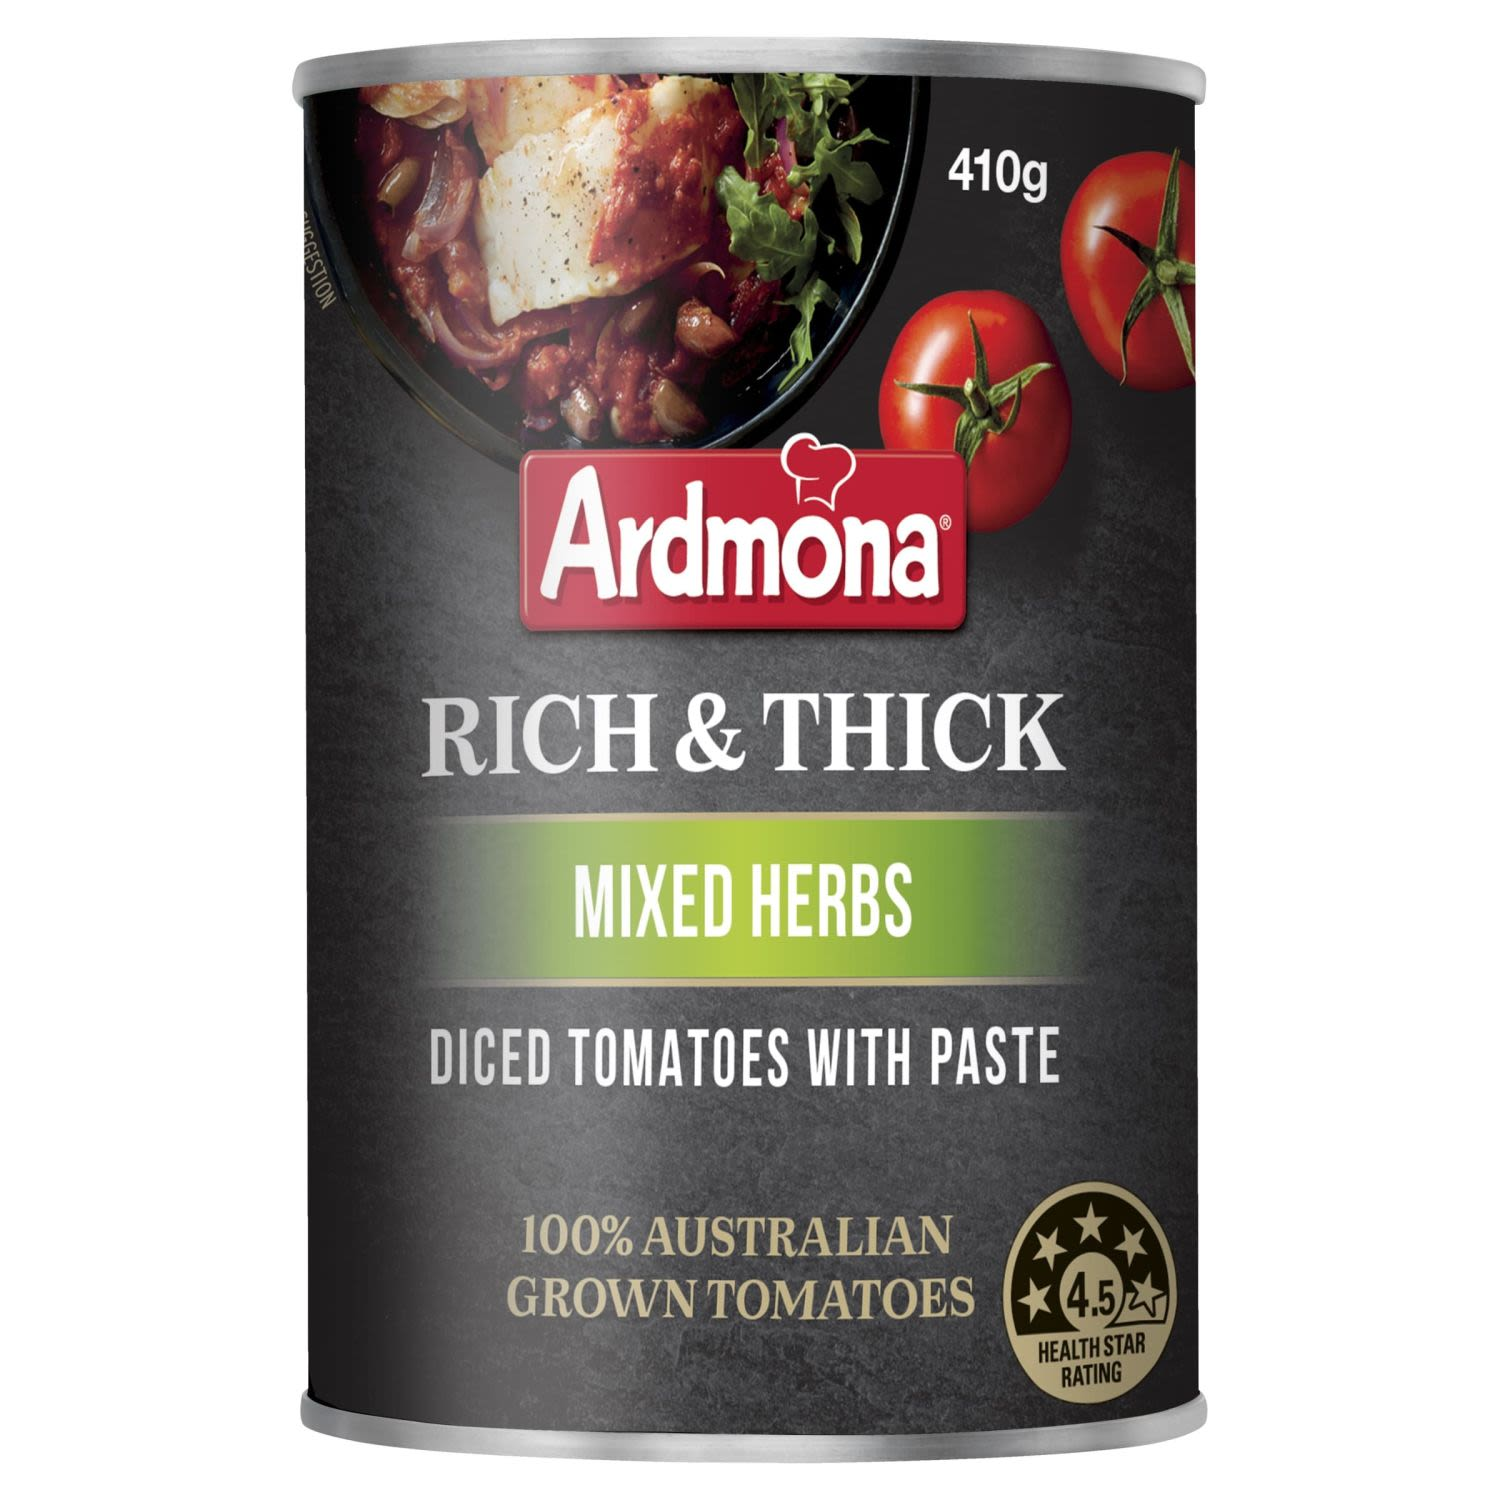 Ardmona Rich & Thick Diced Tomato with Paste Mixed Herbs, 410 Gram